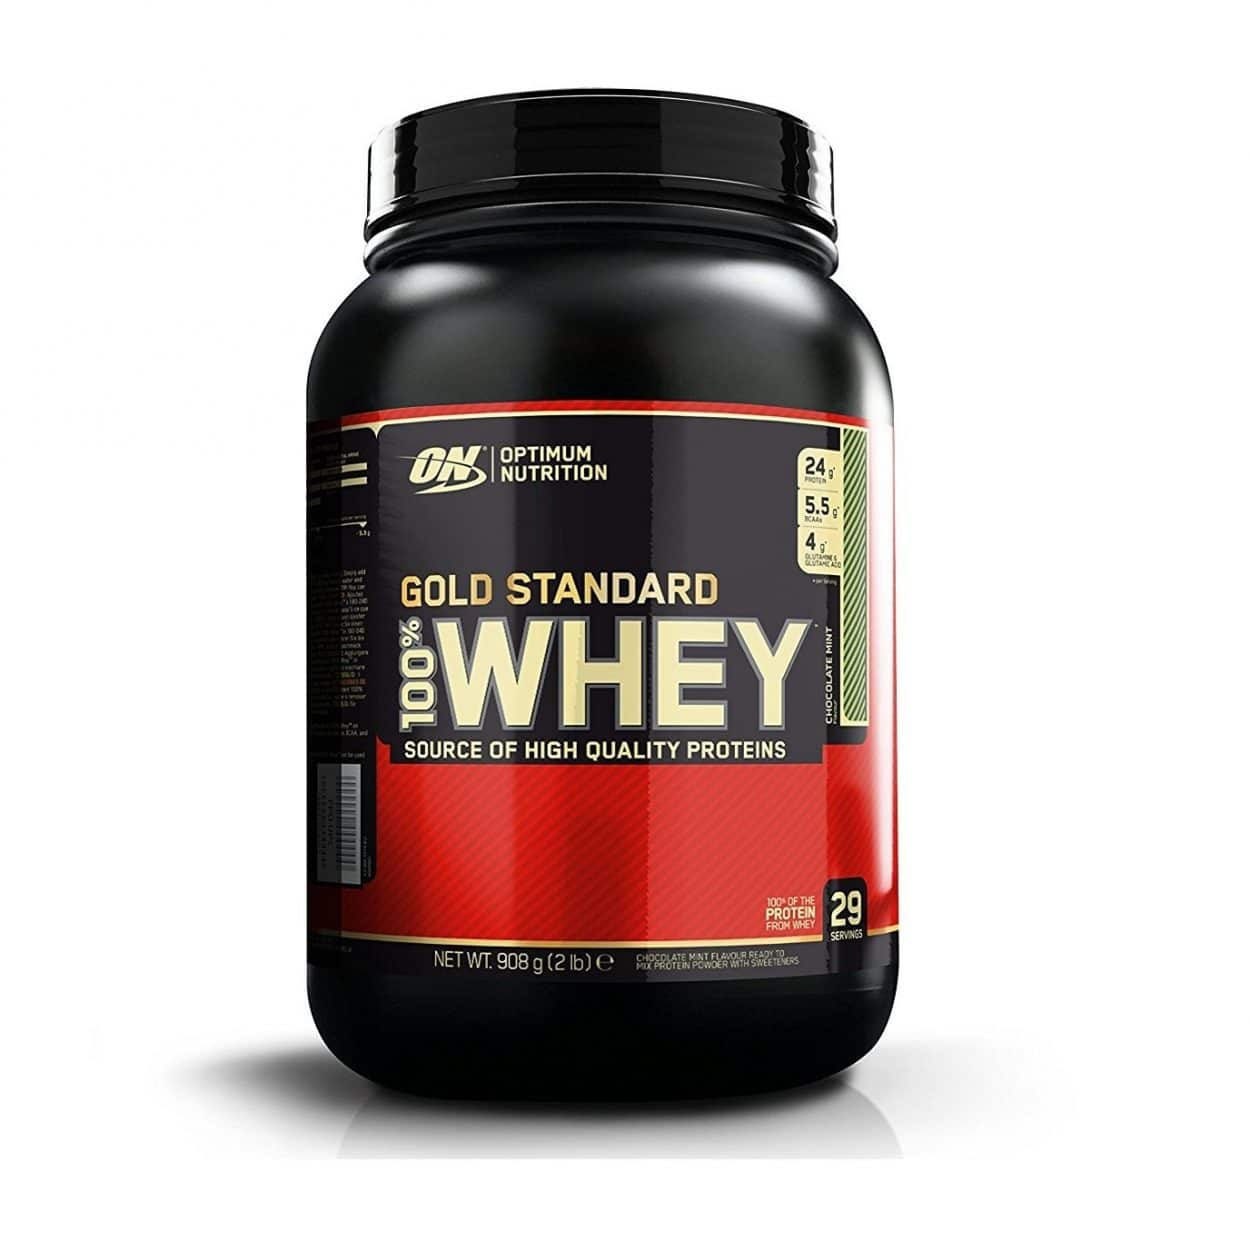 Optimum Nutrition Gold Standard Whey – 908g